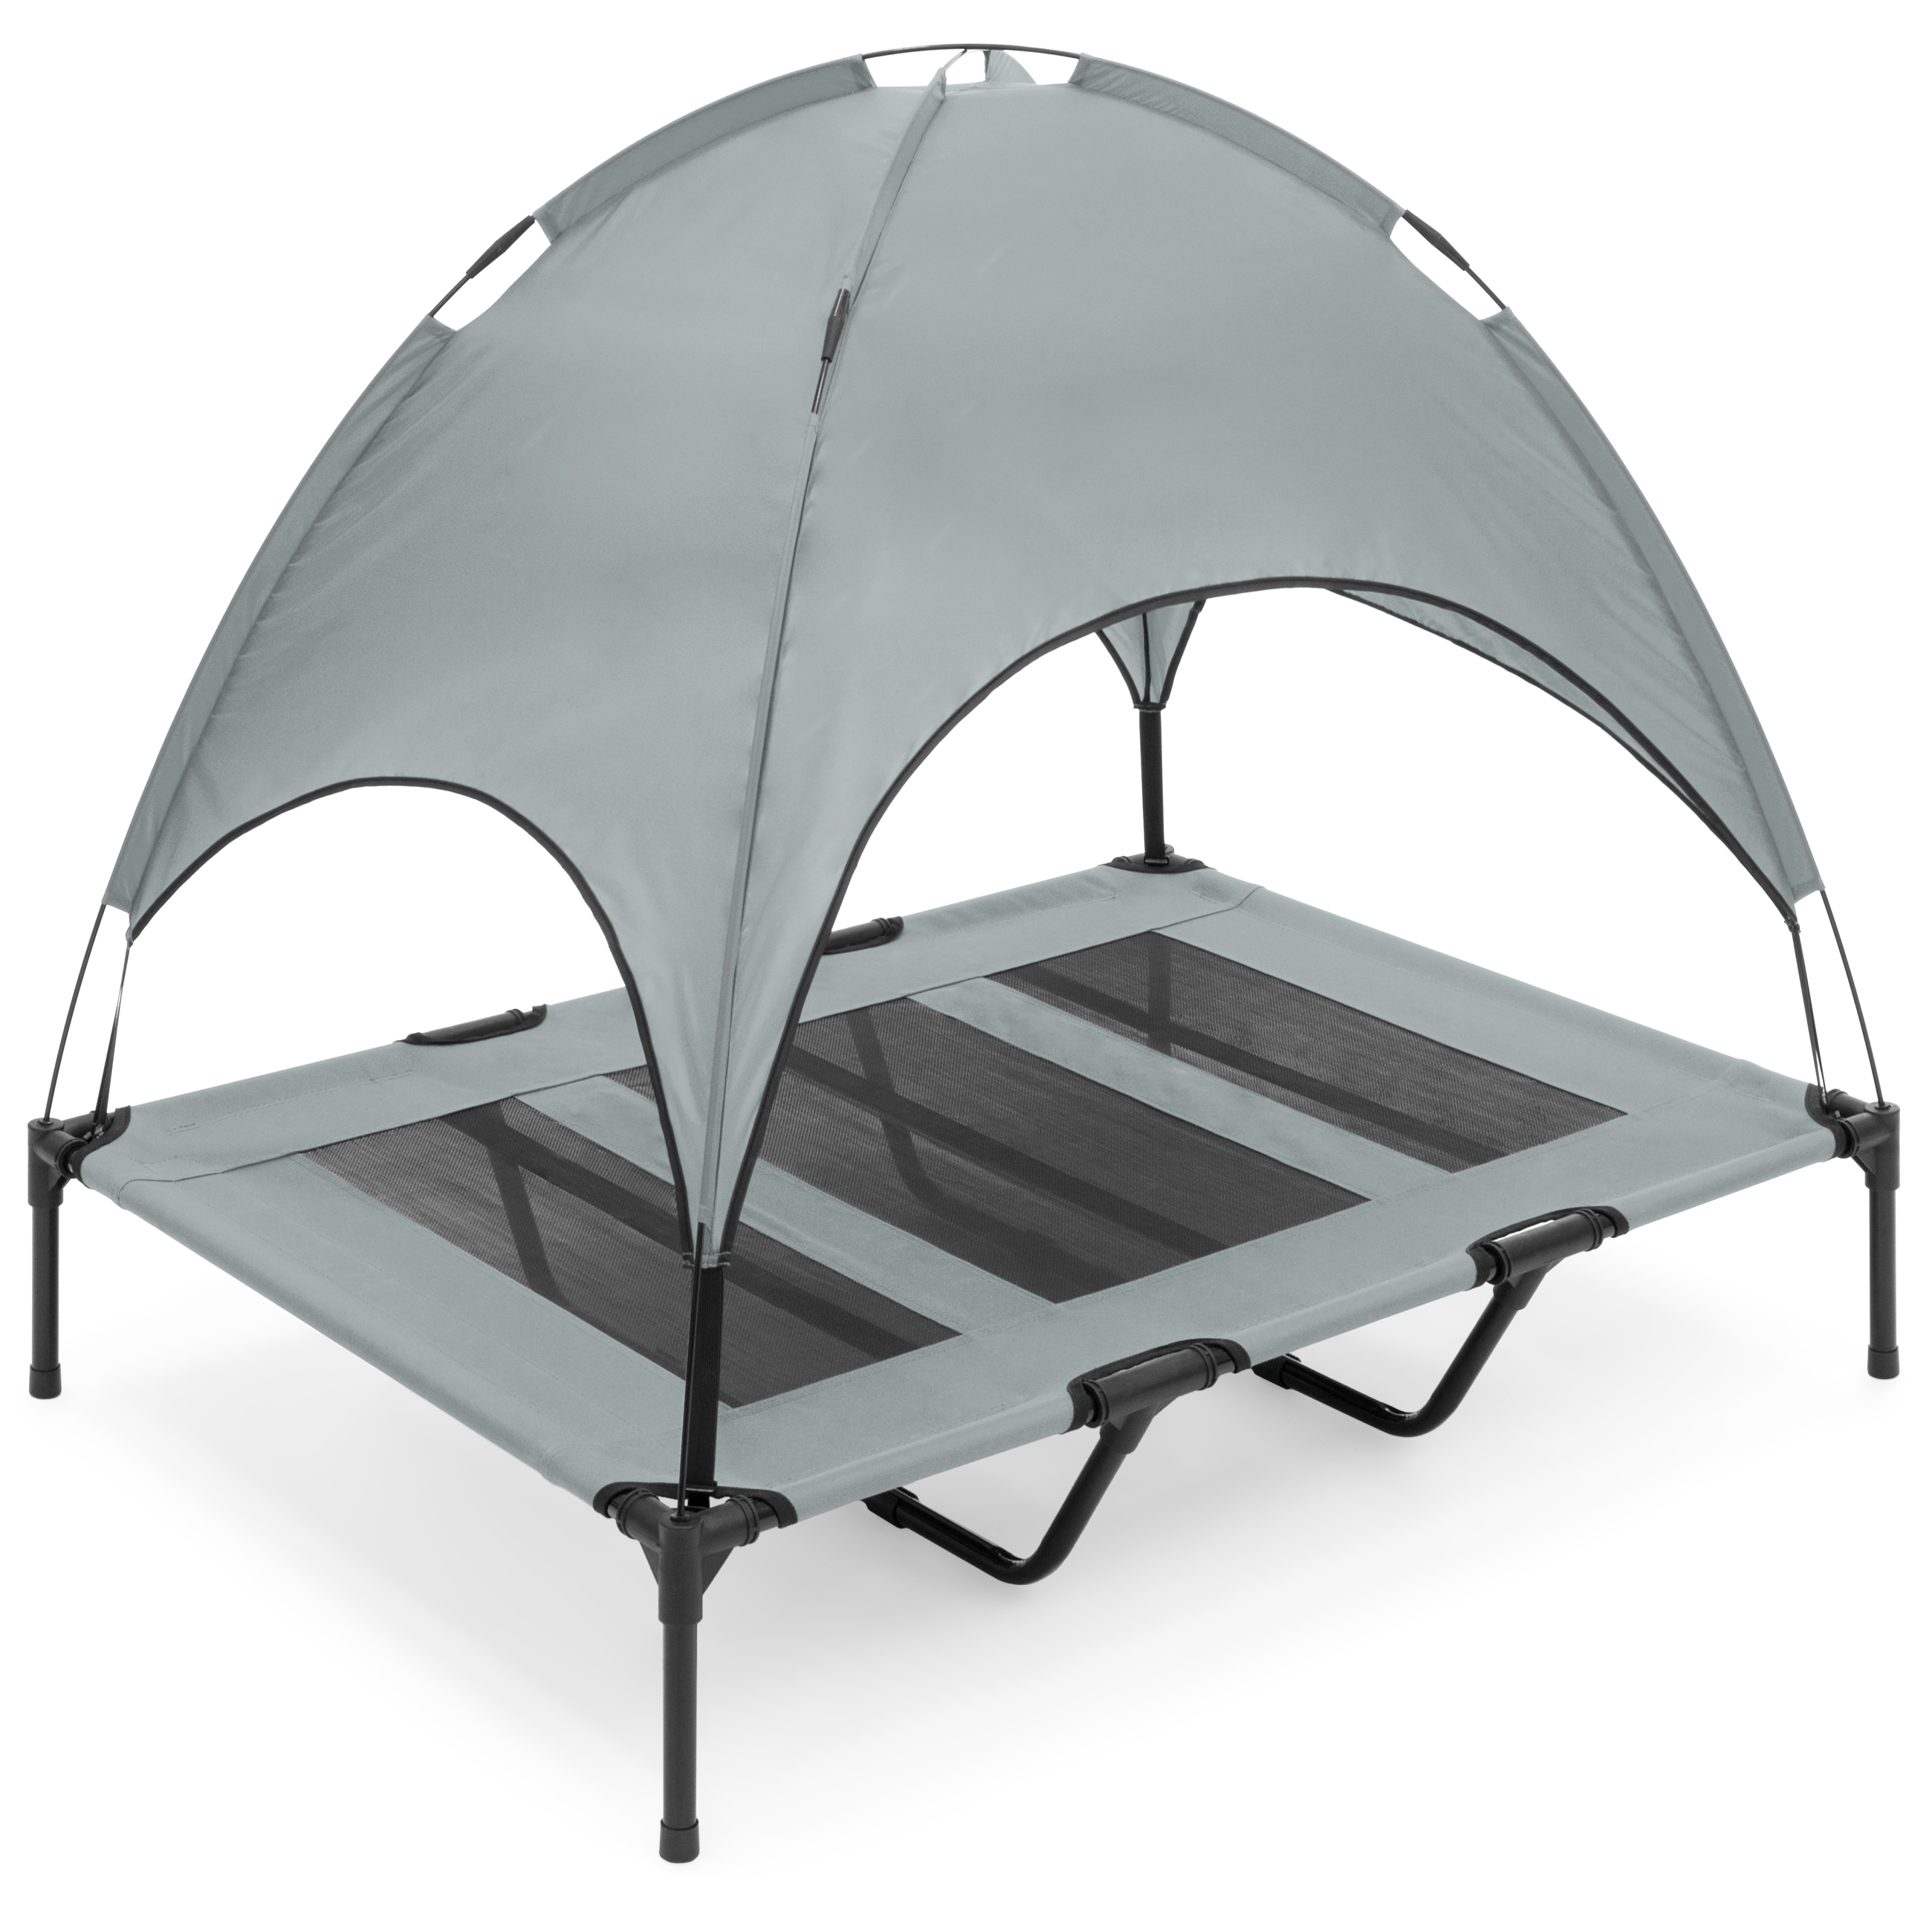 Best Choice Products 48in Raised Mesh Cot Cooling Dog Bed w/ Removable Canopy Tent, Travel Bag - Gray